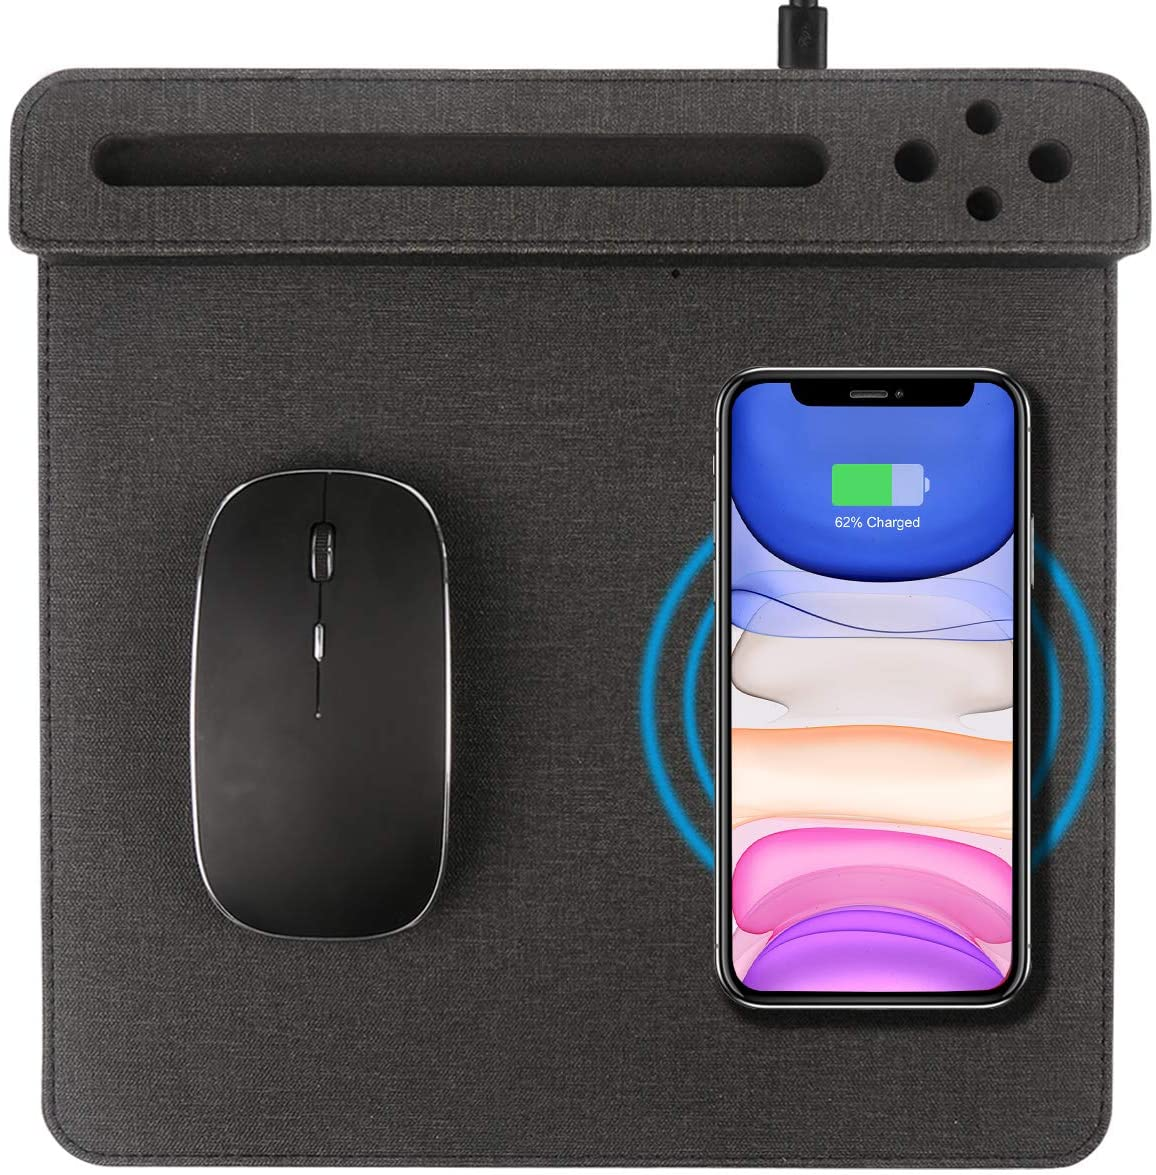 Vheonet Wireless Charging Mouse Pad